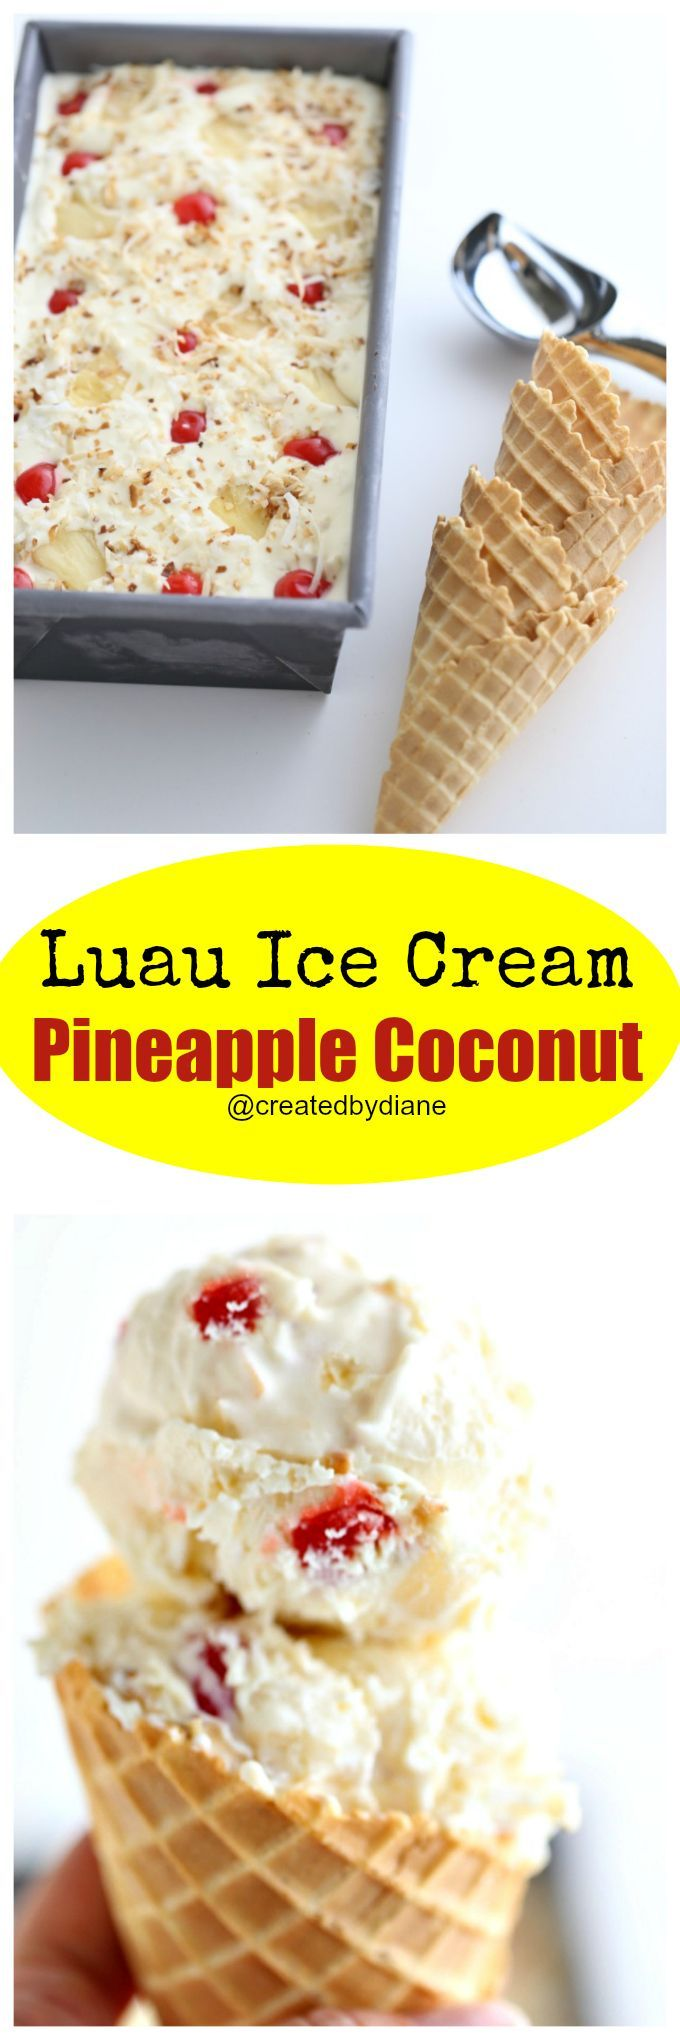 luau ice cream no churn pineapple and coconut from /createdbydiane/